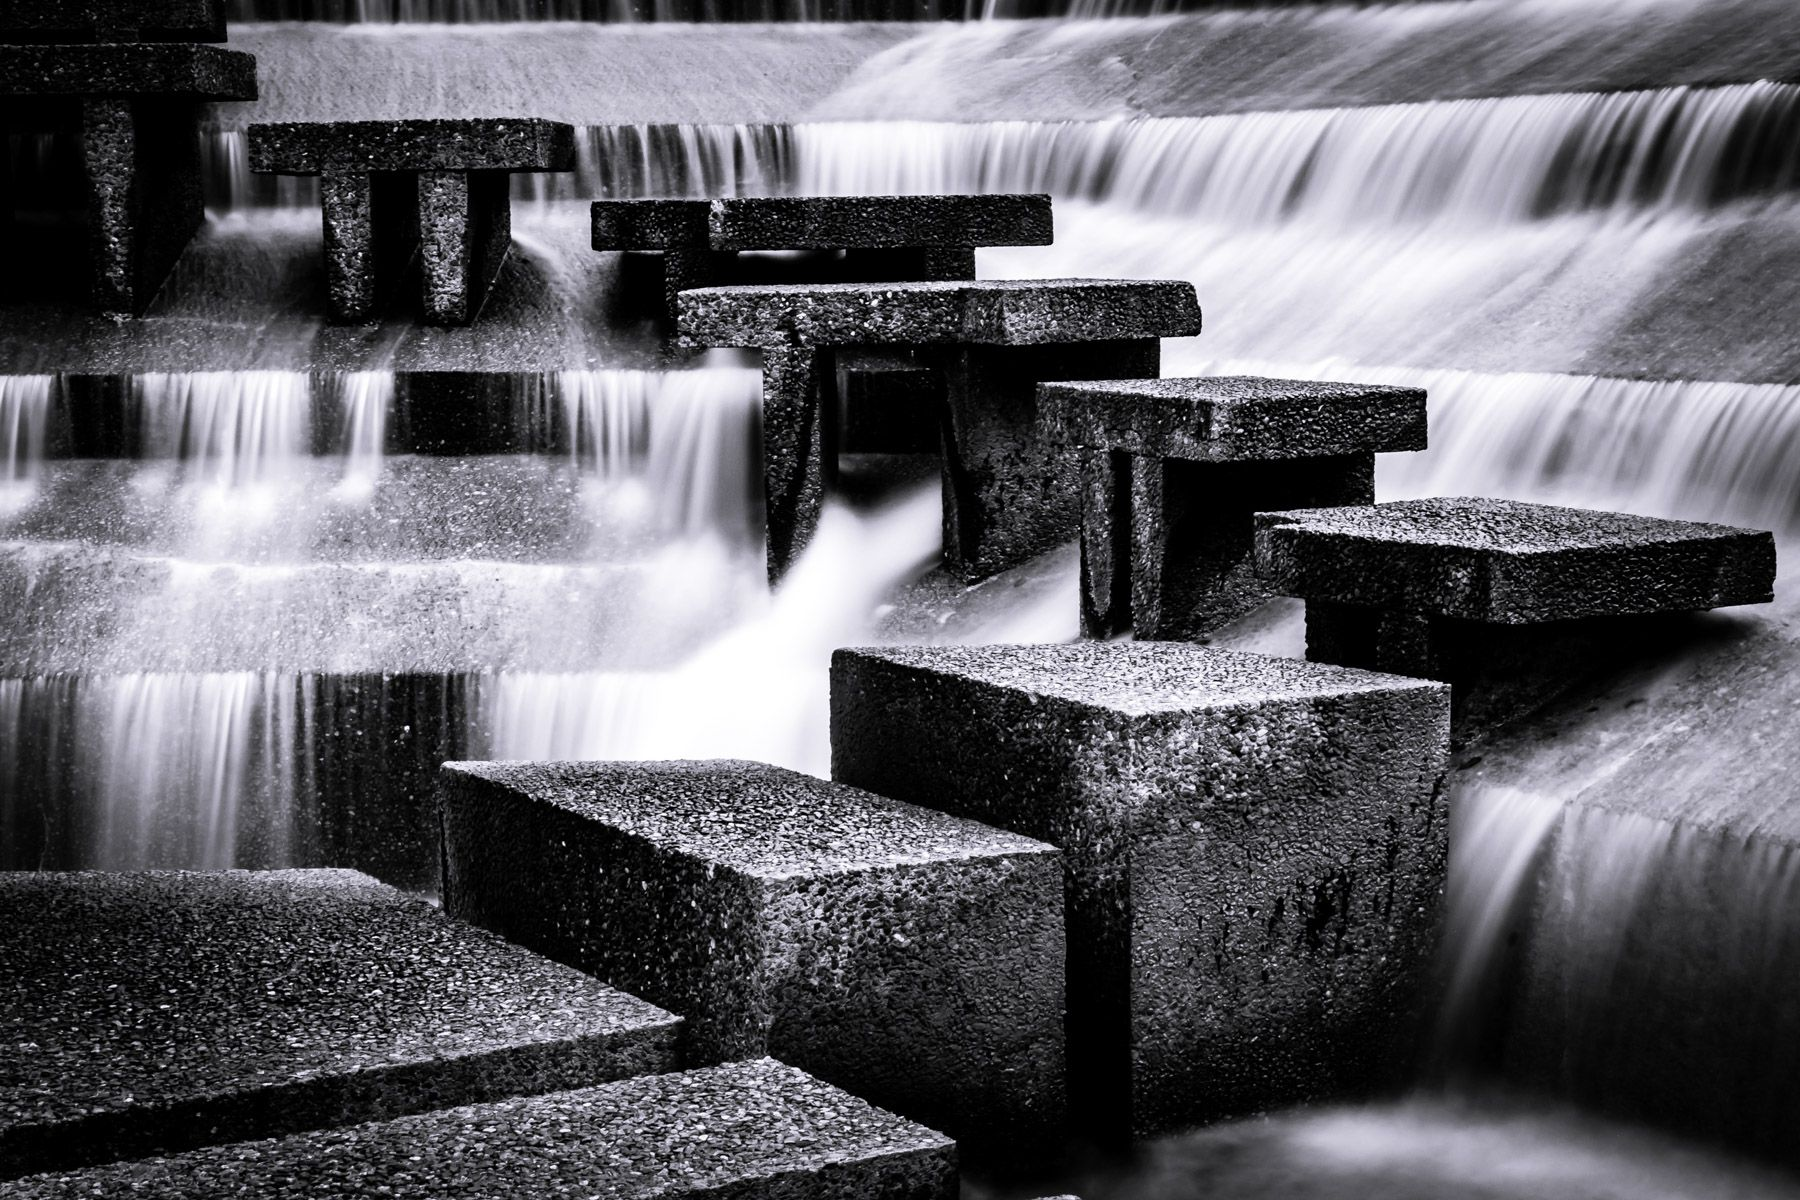 Water cascades around concrete steps at the Fort Worth